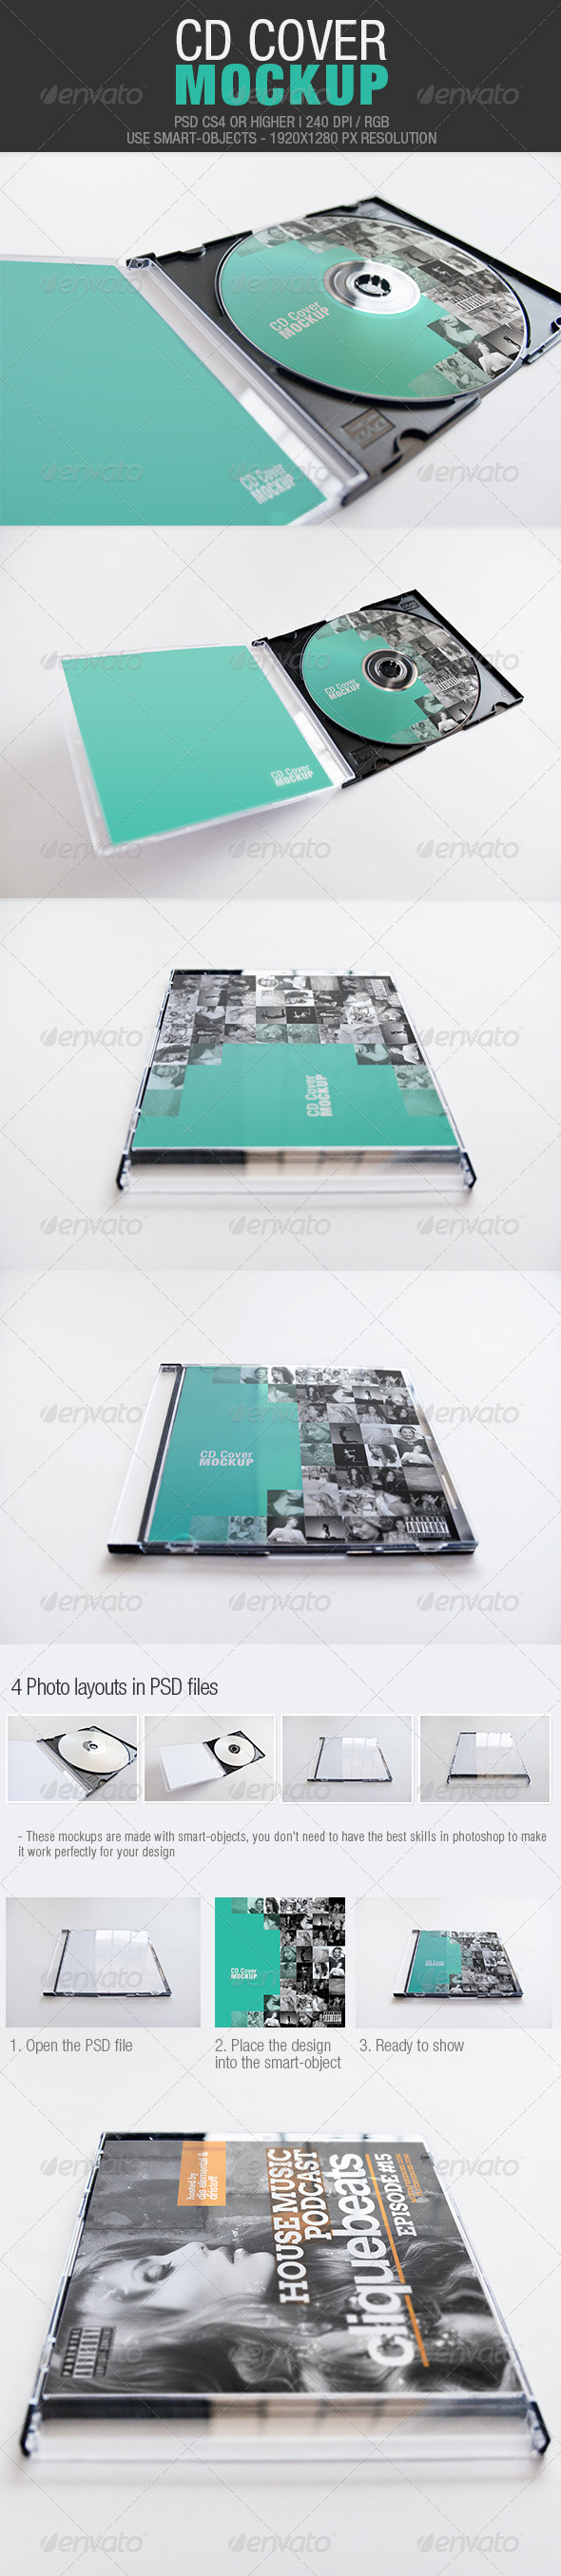 GraphicRiver CD Cover Mockup 4244724